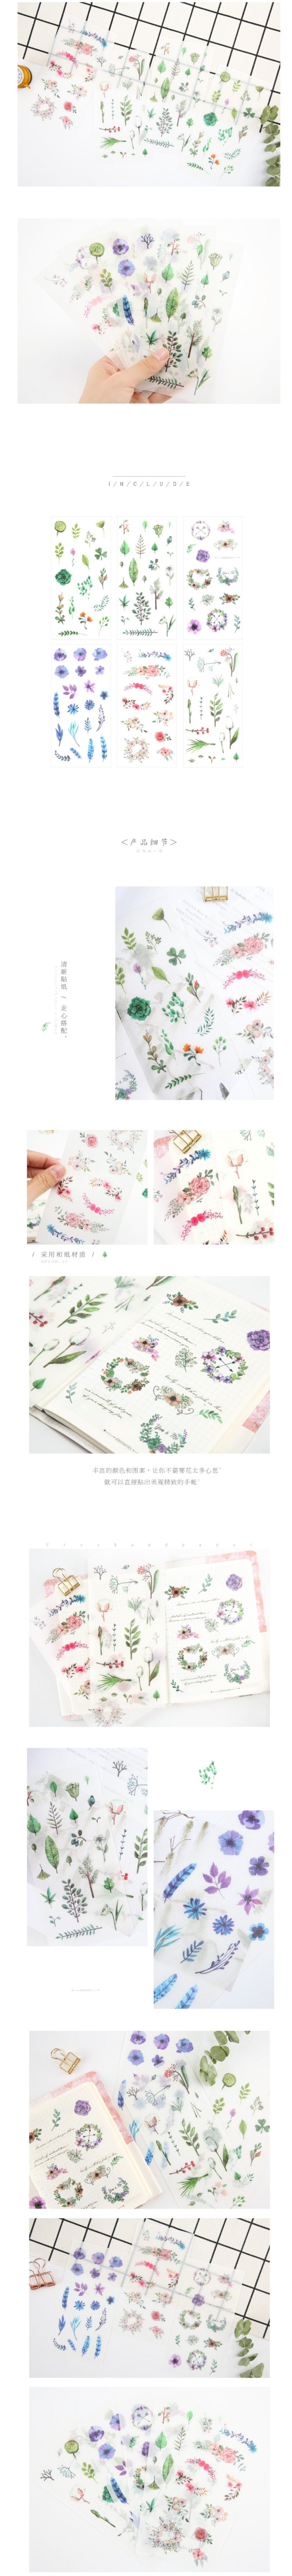 Watercolor flower and cactus sticker set: cute DIY, scrapbooking, bullet journal, and planner stickers - Otrio Stationery